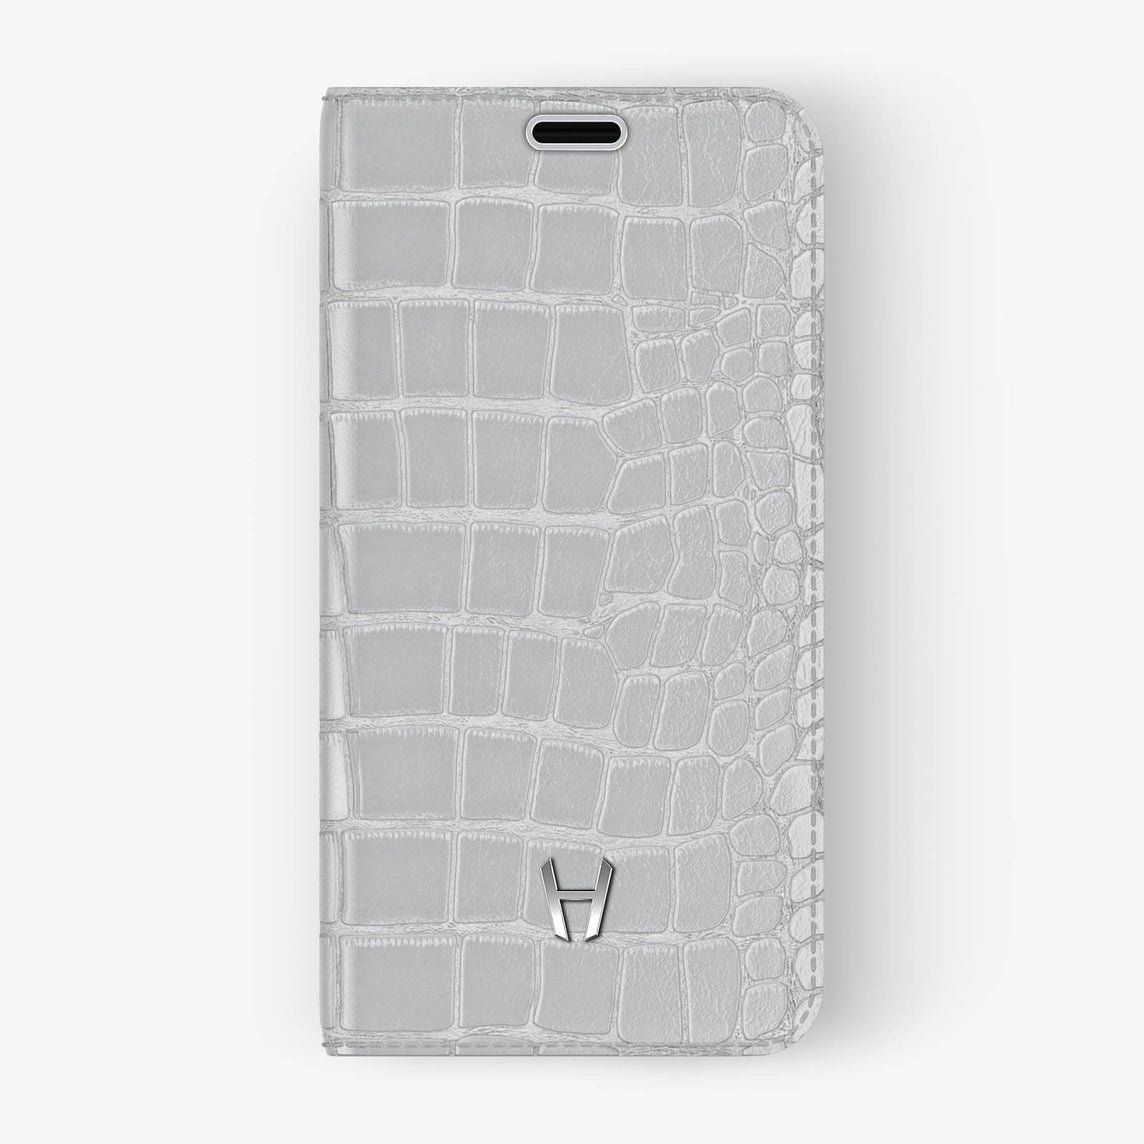 White Alligator iPhone Folio Case for iPhone X finishing stainless steel - Hadoro Luxury Cases